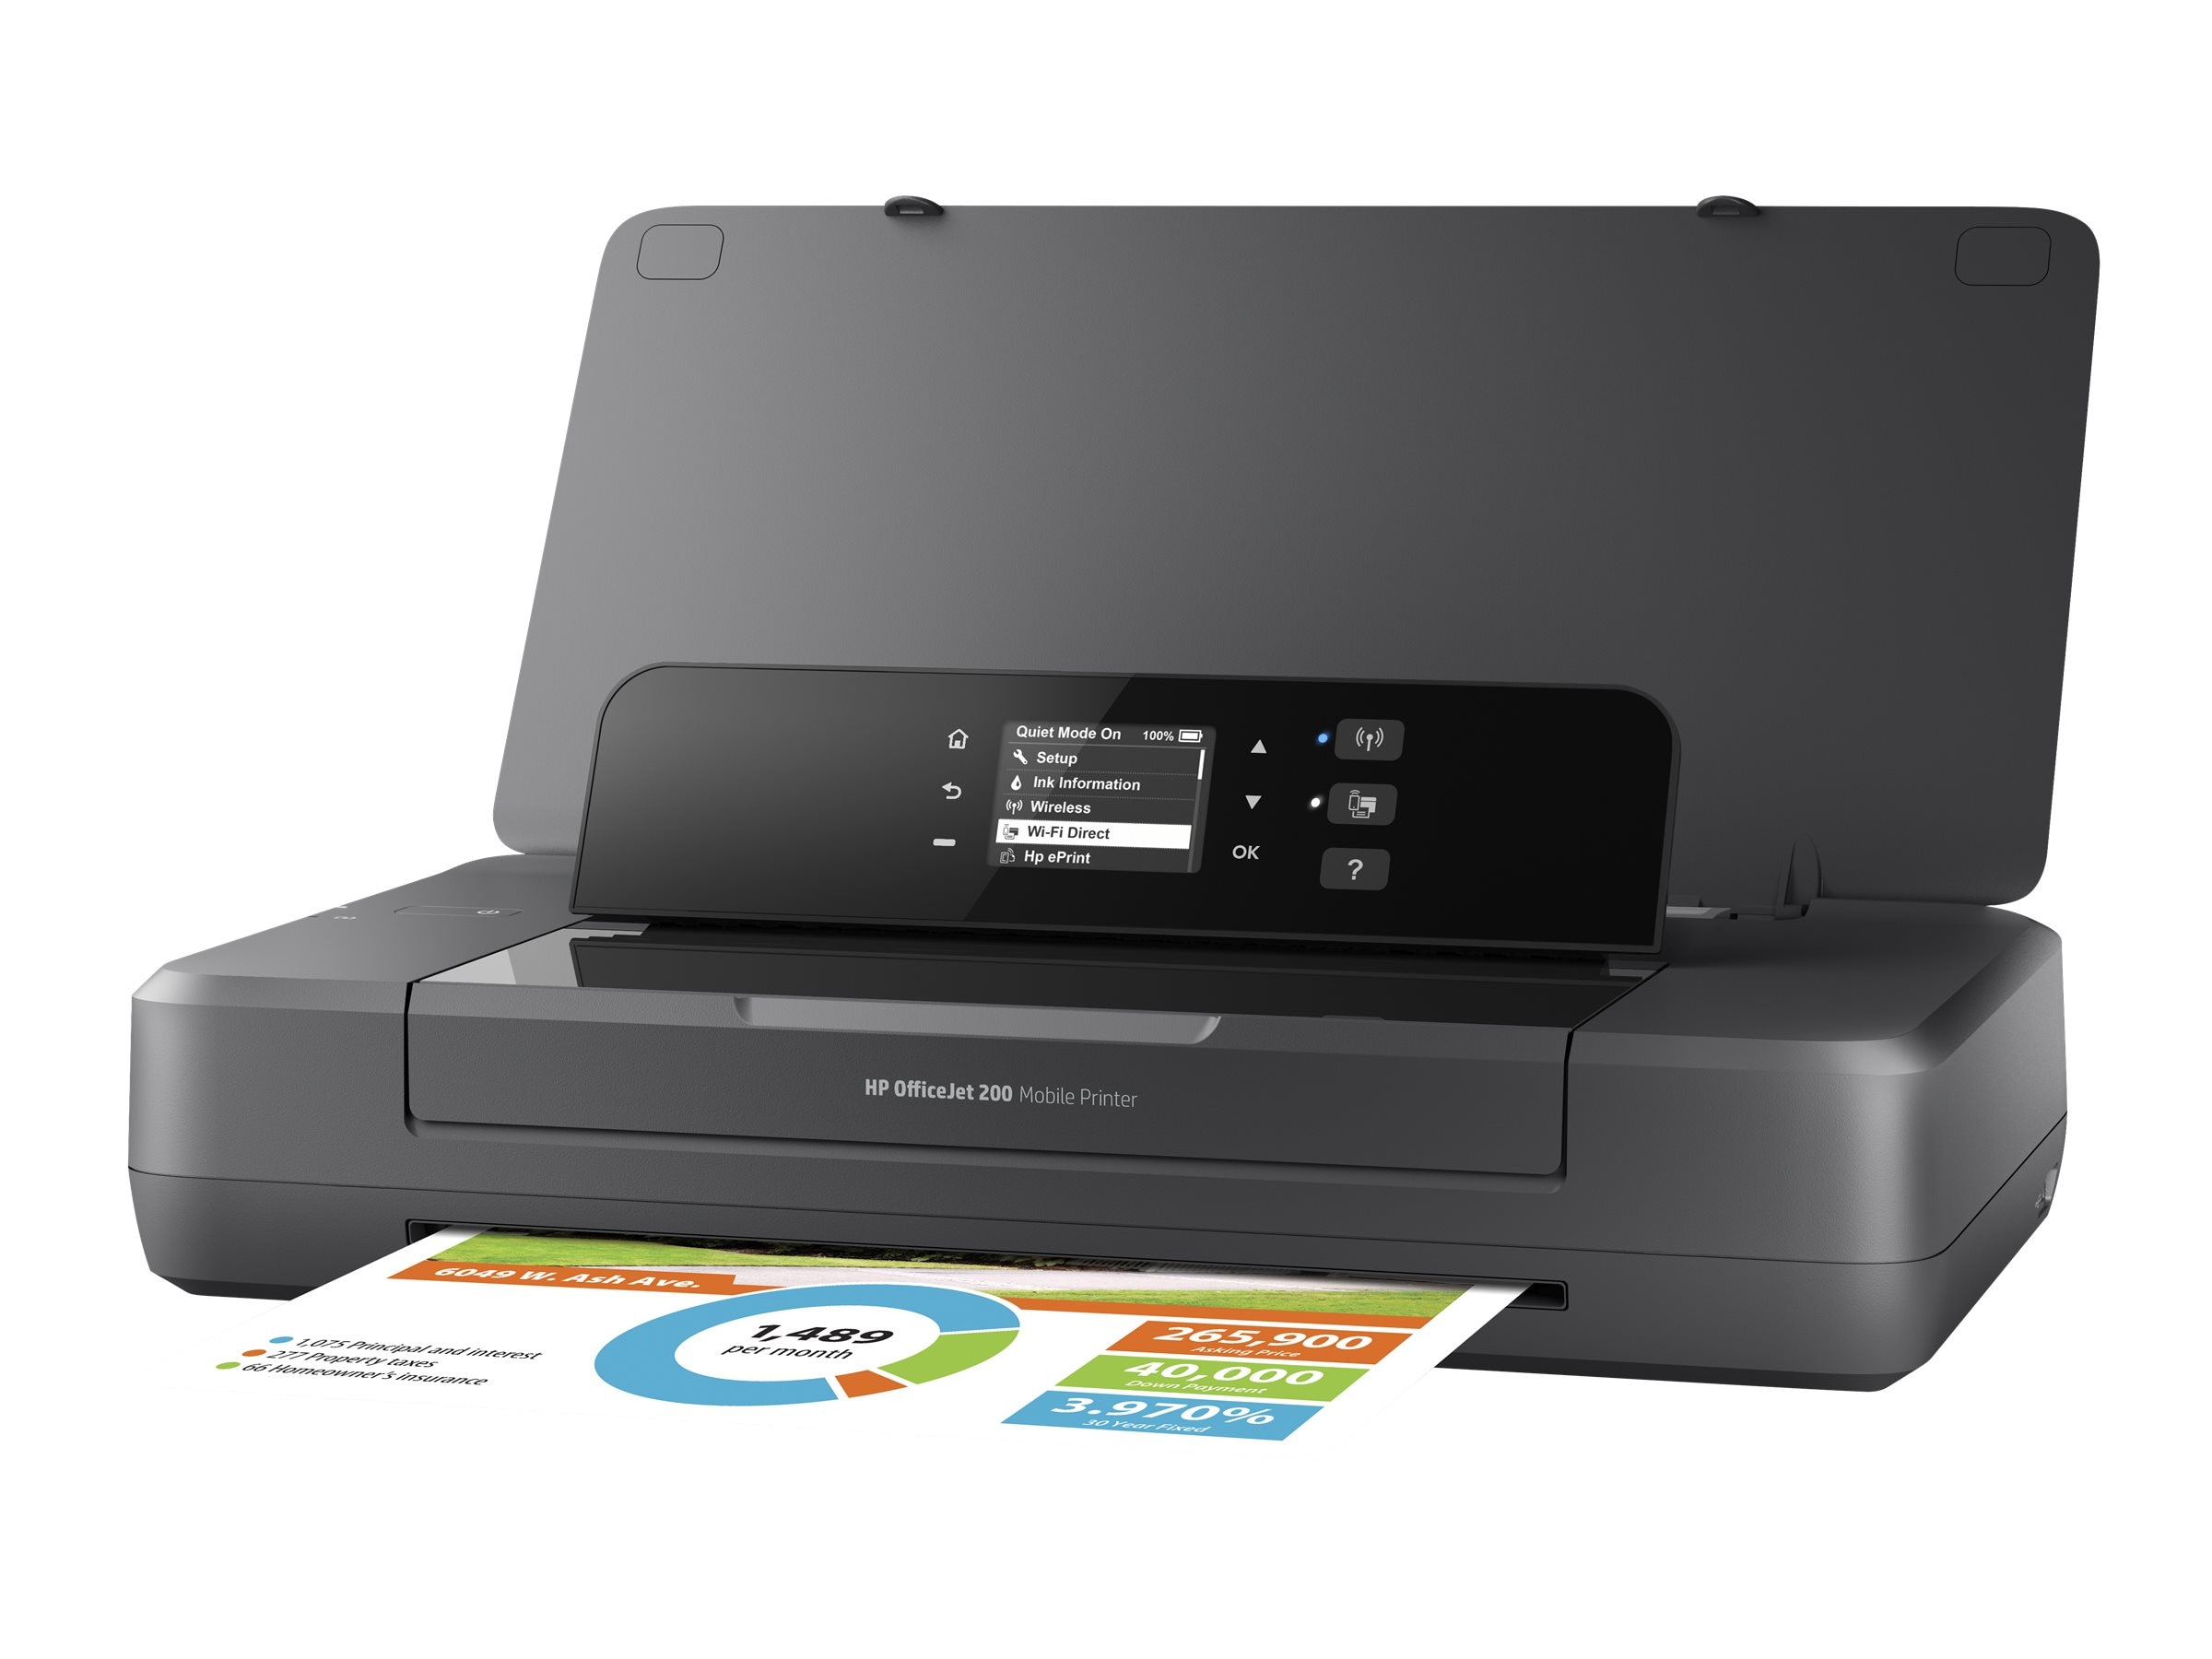 HP Officejet 200 Mobile Printer ($279 - $50 Instant Rebate = $229 Expires 11 30)